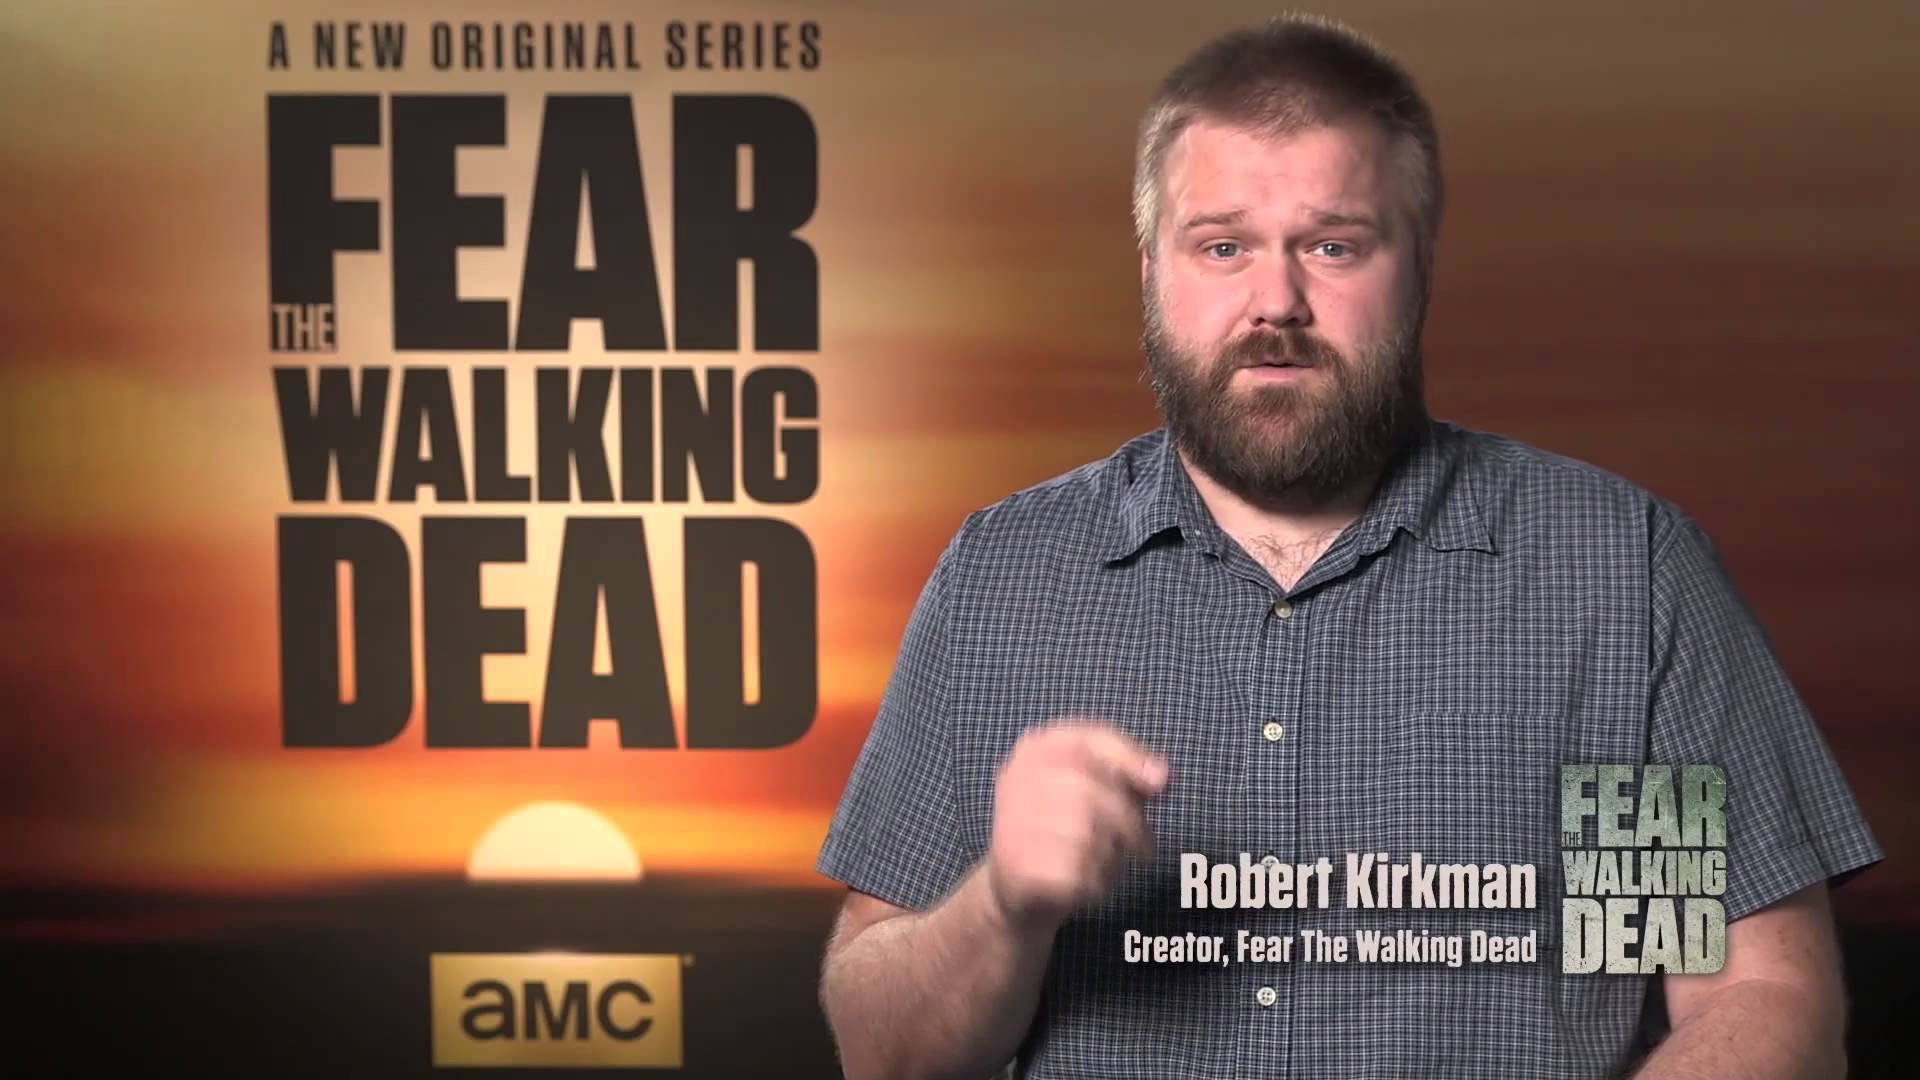 'Fear the Walking Dead's' Robert Kirkman 'ramps up the action' in Season Two